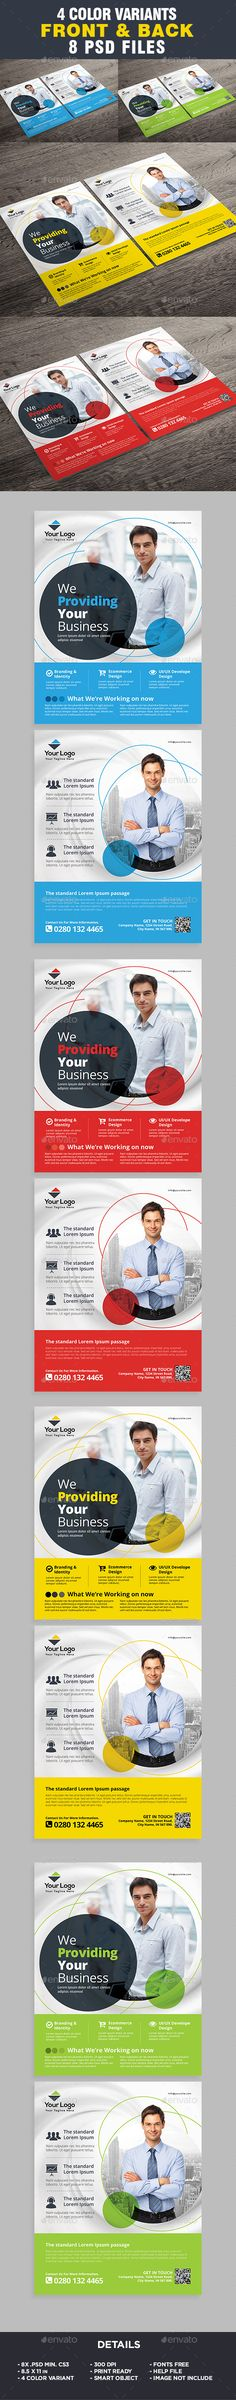 Corporate Business Flyer Template by ivanjoys19 More Flyer Template All elements beside the image are fully editable CMYK �20print readyLetter: 8.5×11 in. (potrait)   0.25 in.